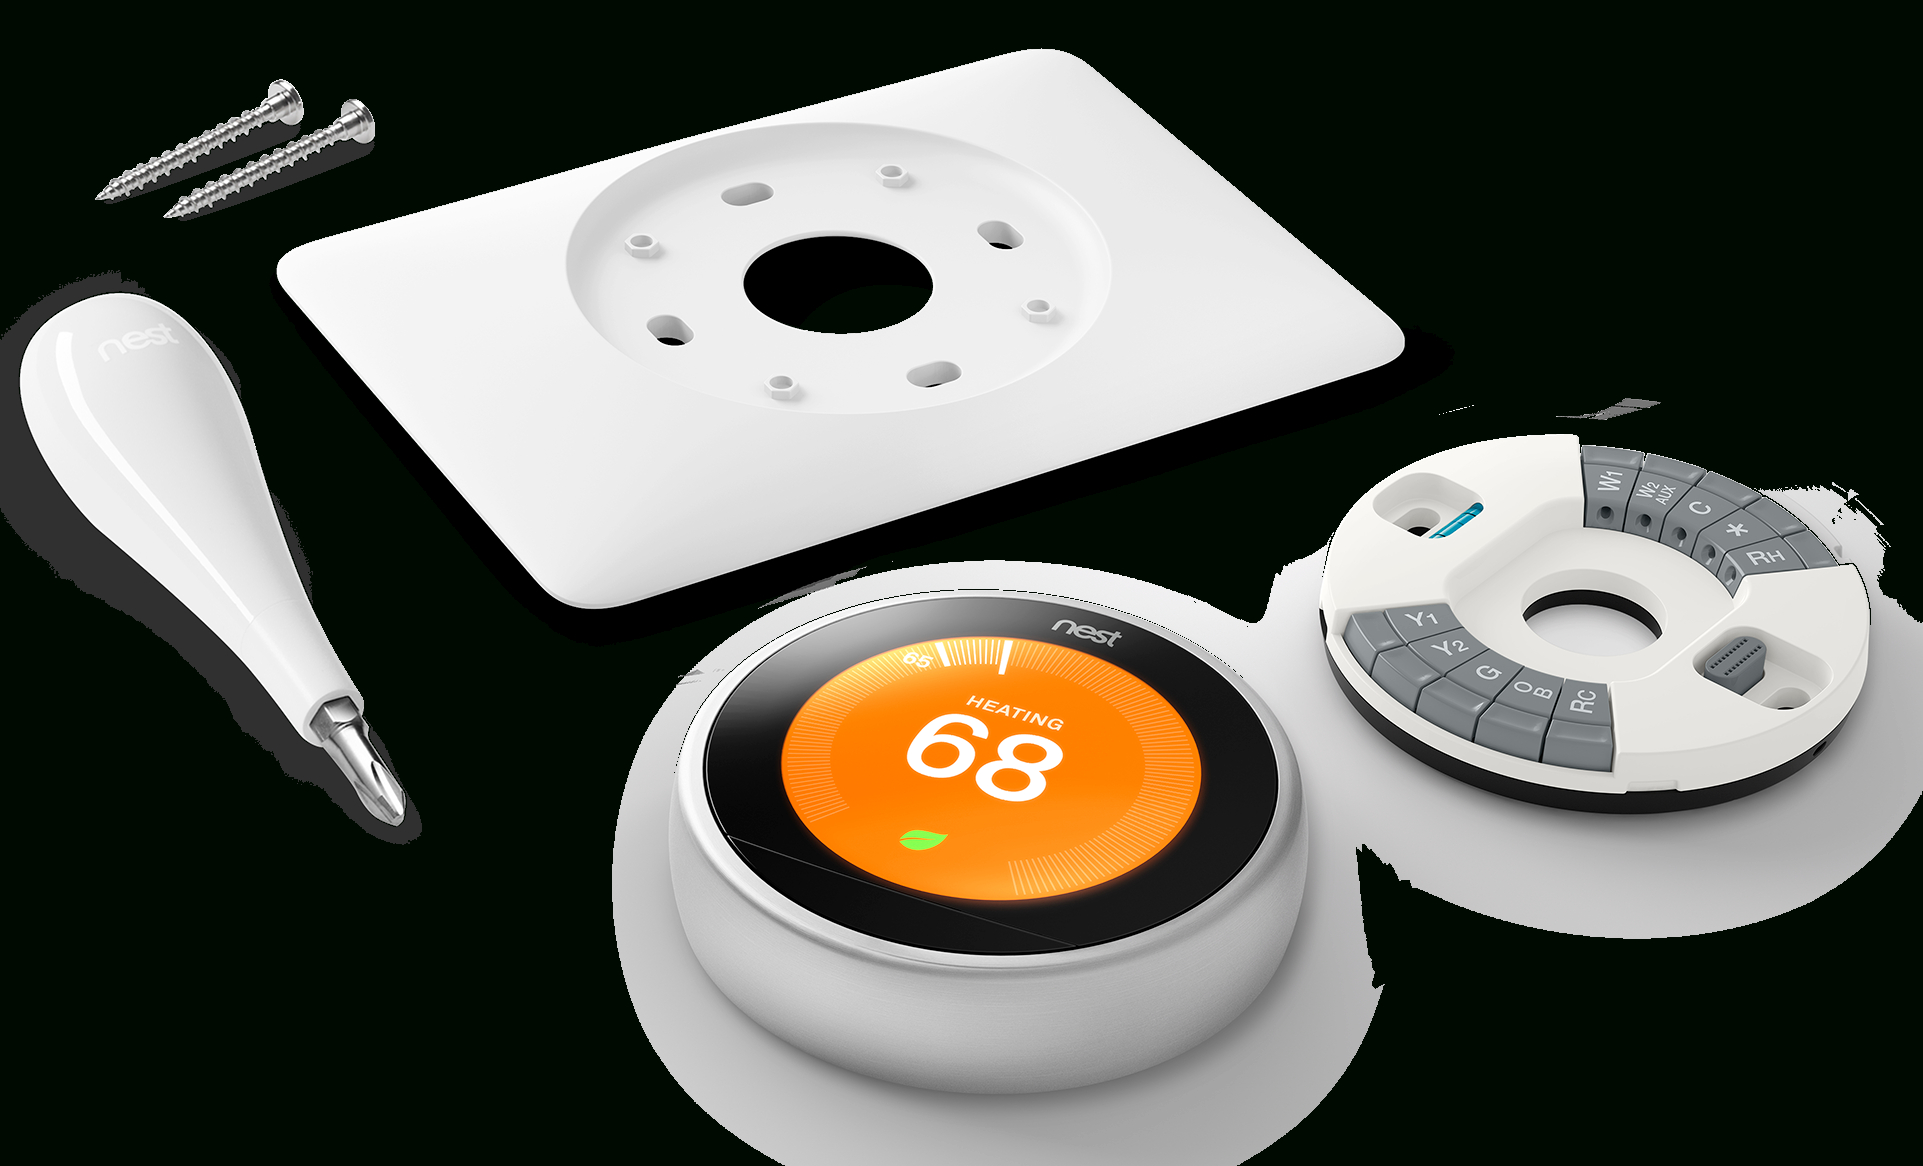 How To Install Your Nest Thermostat - Nest Wiring Diagram You Got From Our Online Compatibility Checker.